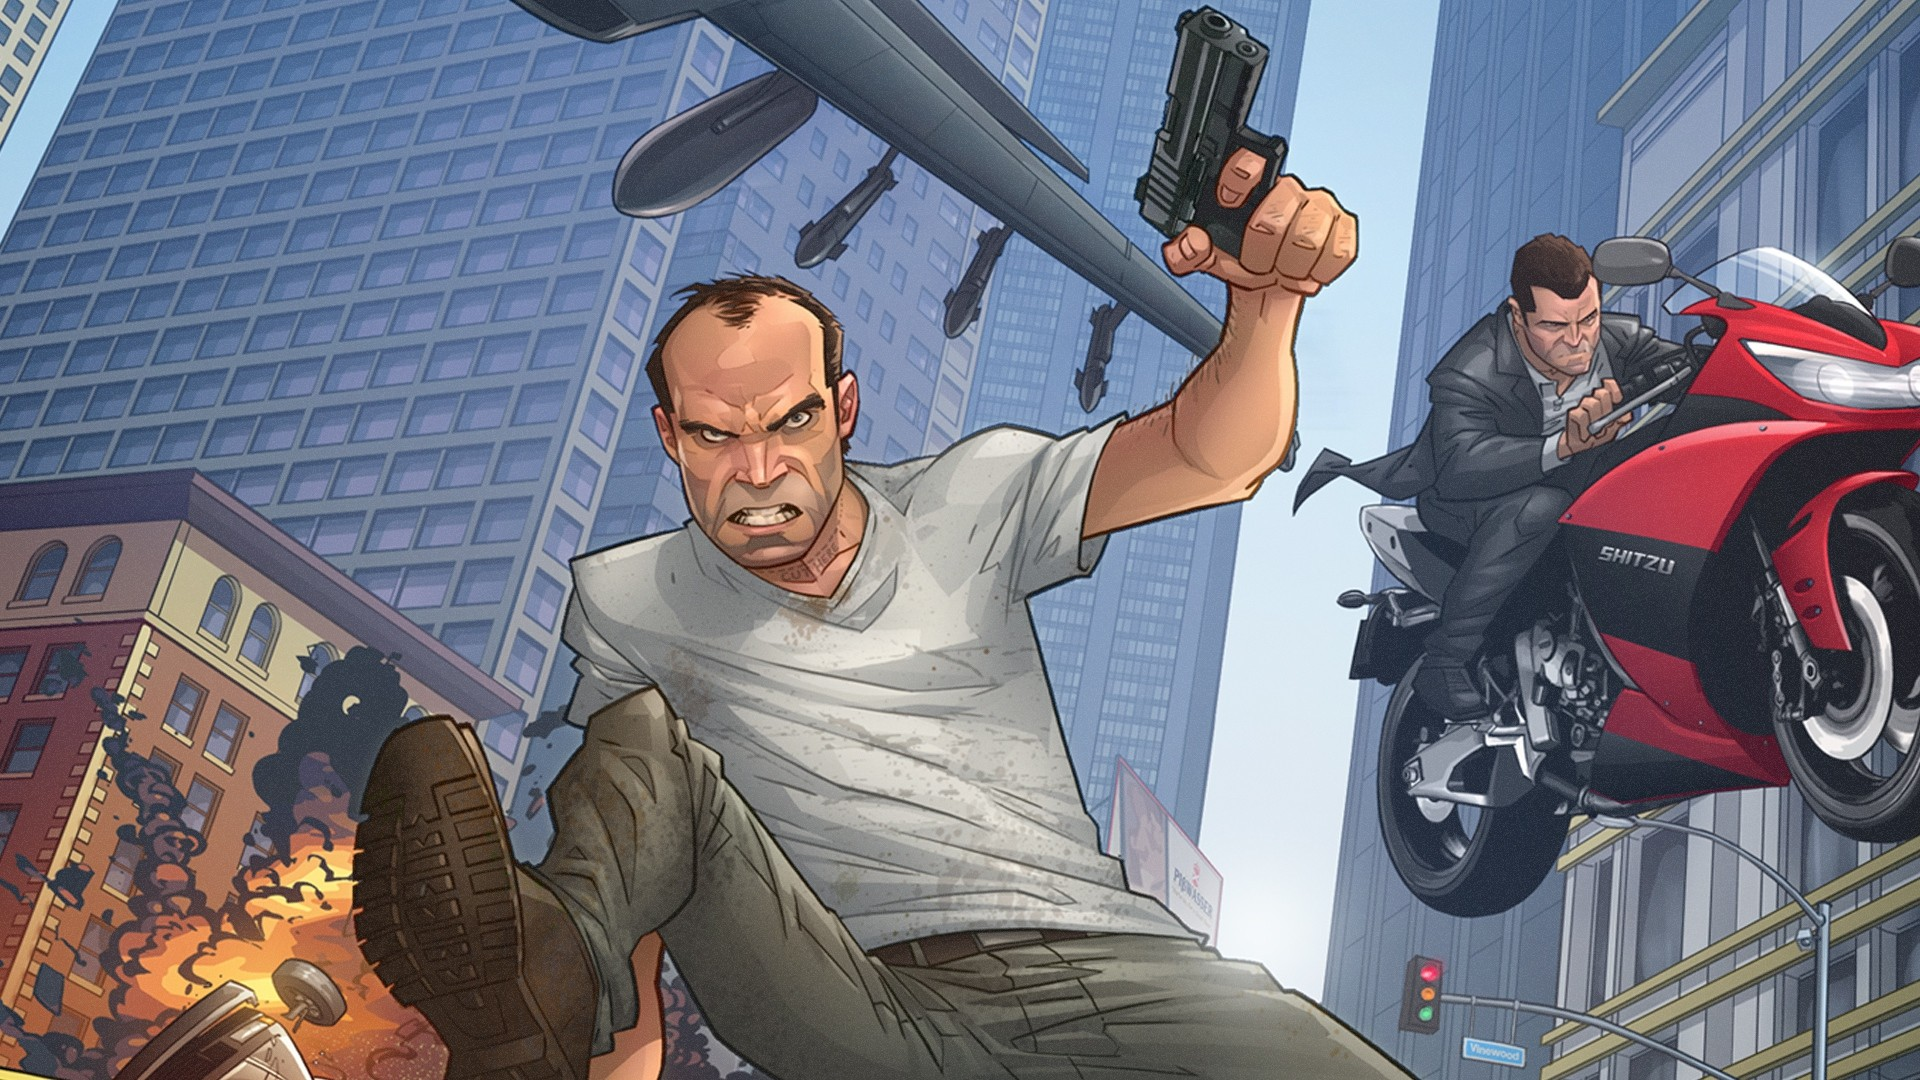 Get the latest grand theft auto v, patrick brown, art news, pictures and  videos and learn all about grand theft auto v, patrick brown, …